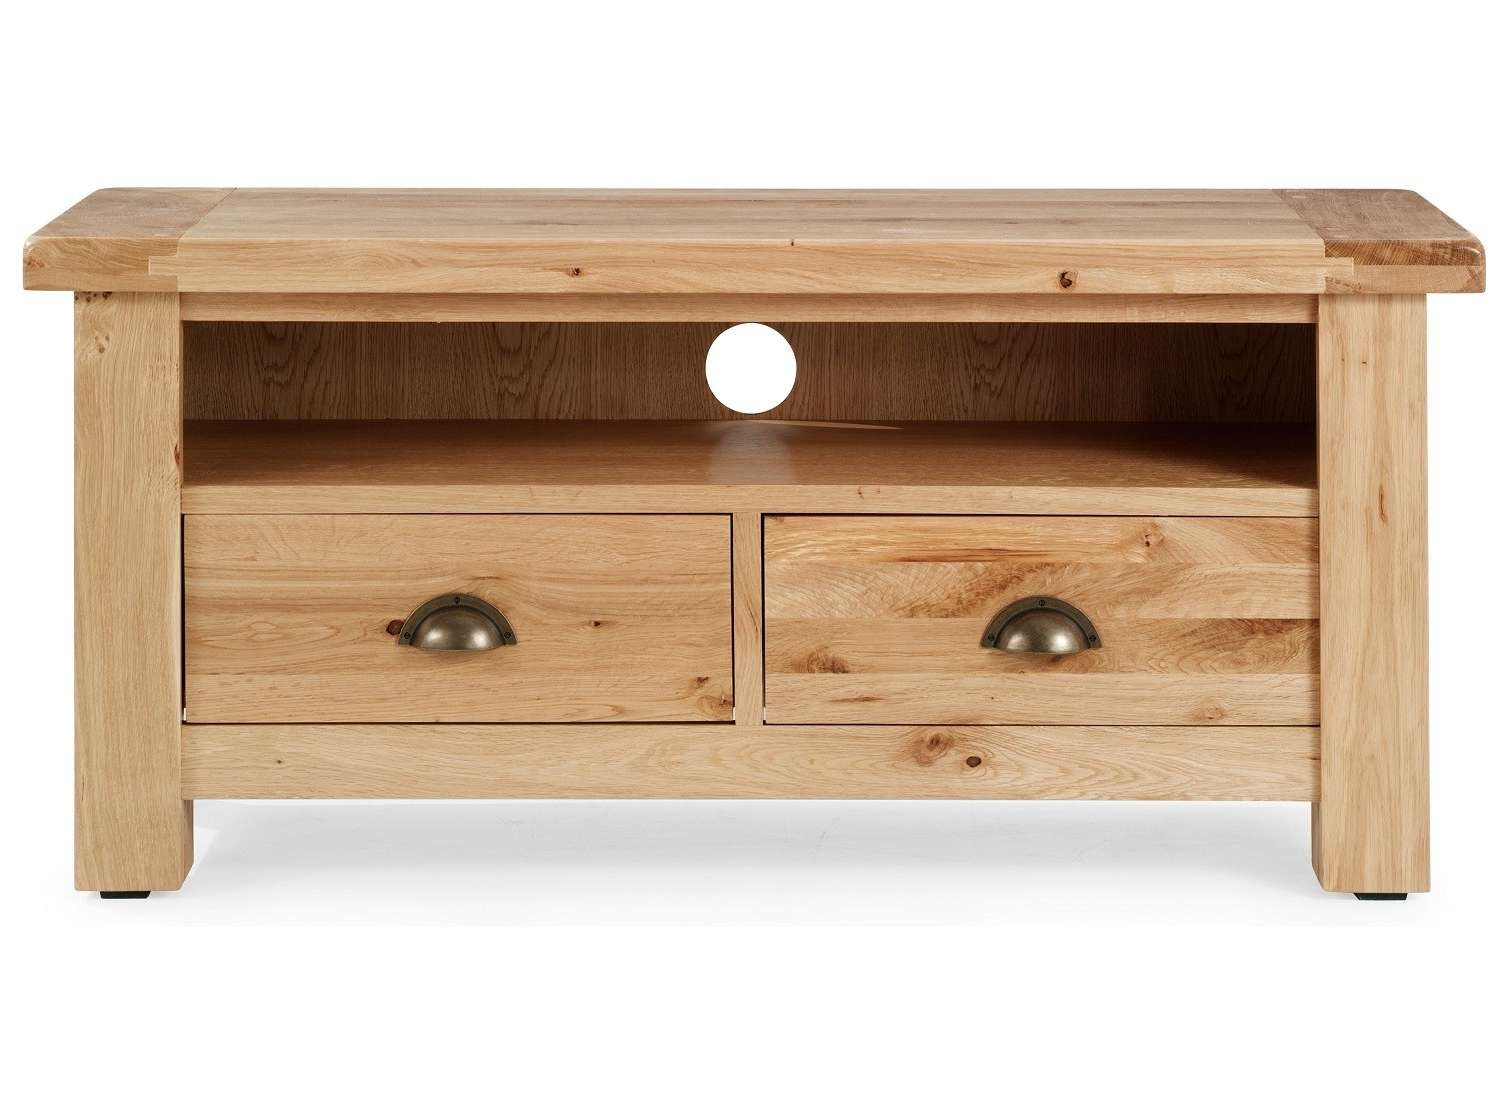 Normandy Rustic French Oak Tv Cabinet | Oak Furniture Uk For Light Oak Corner Tv Stands (View 8 of 20)